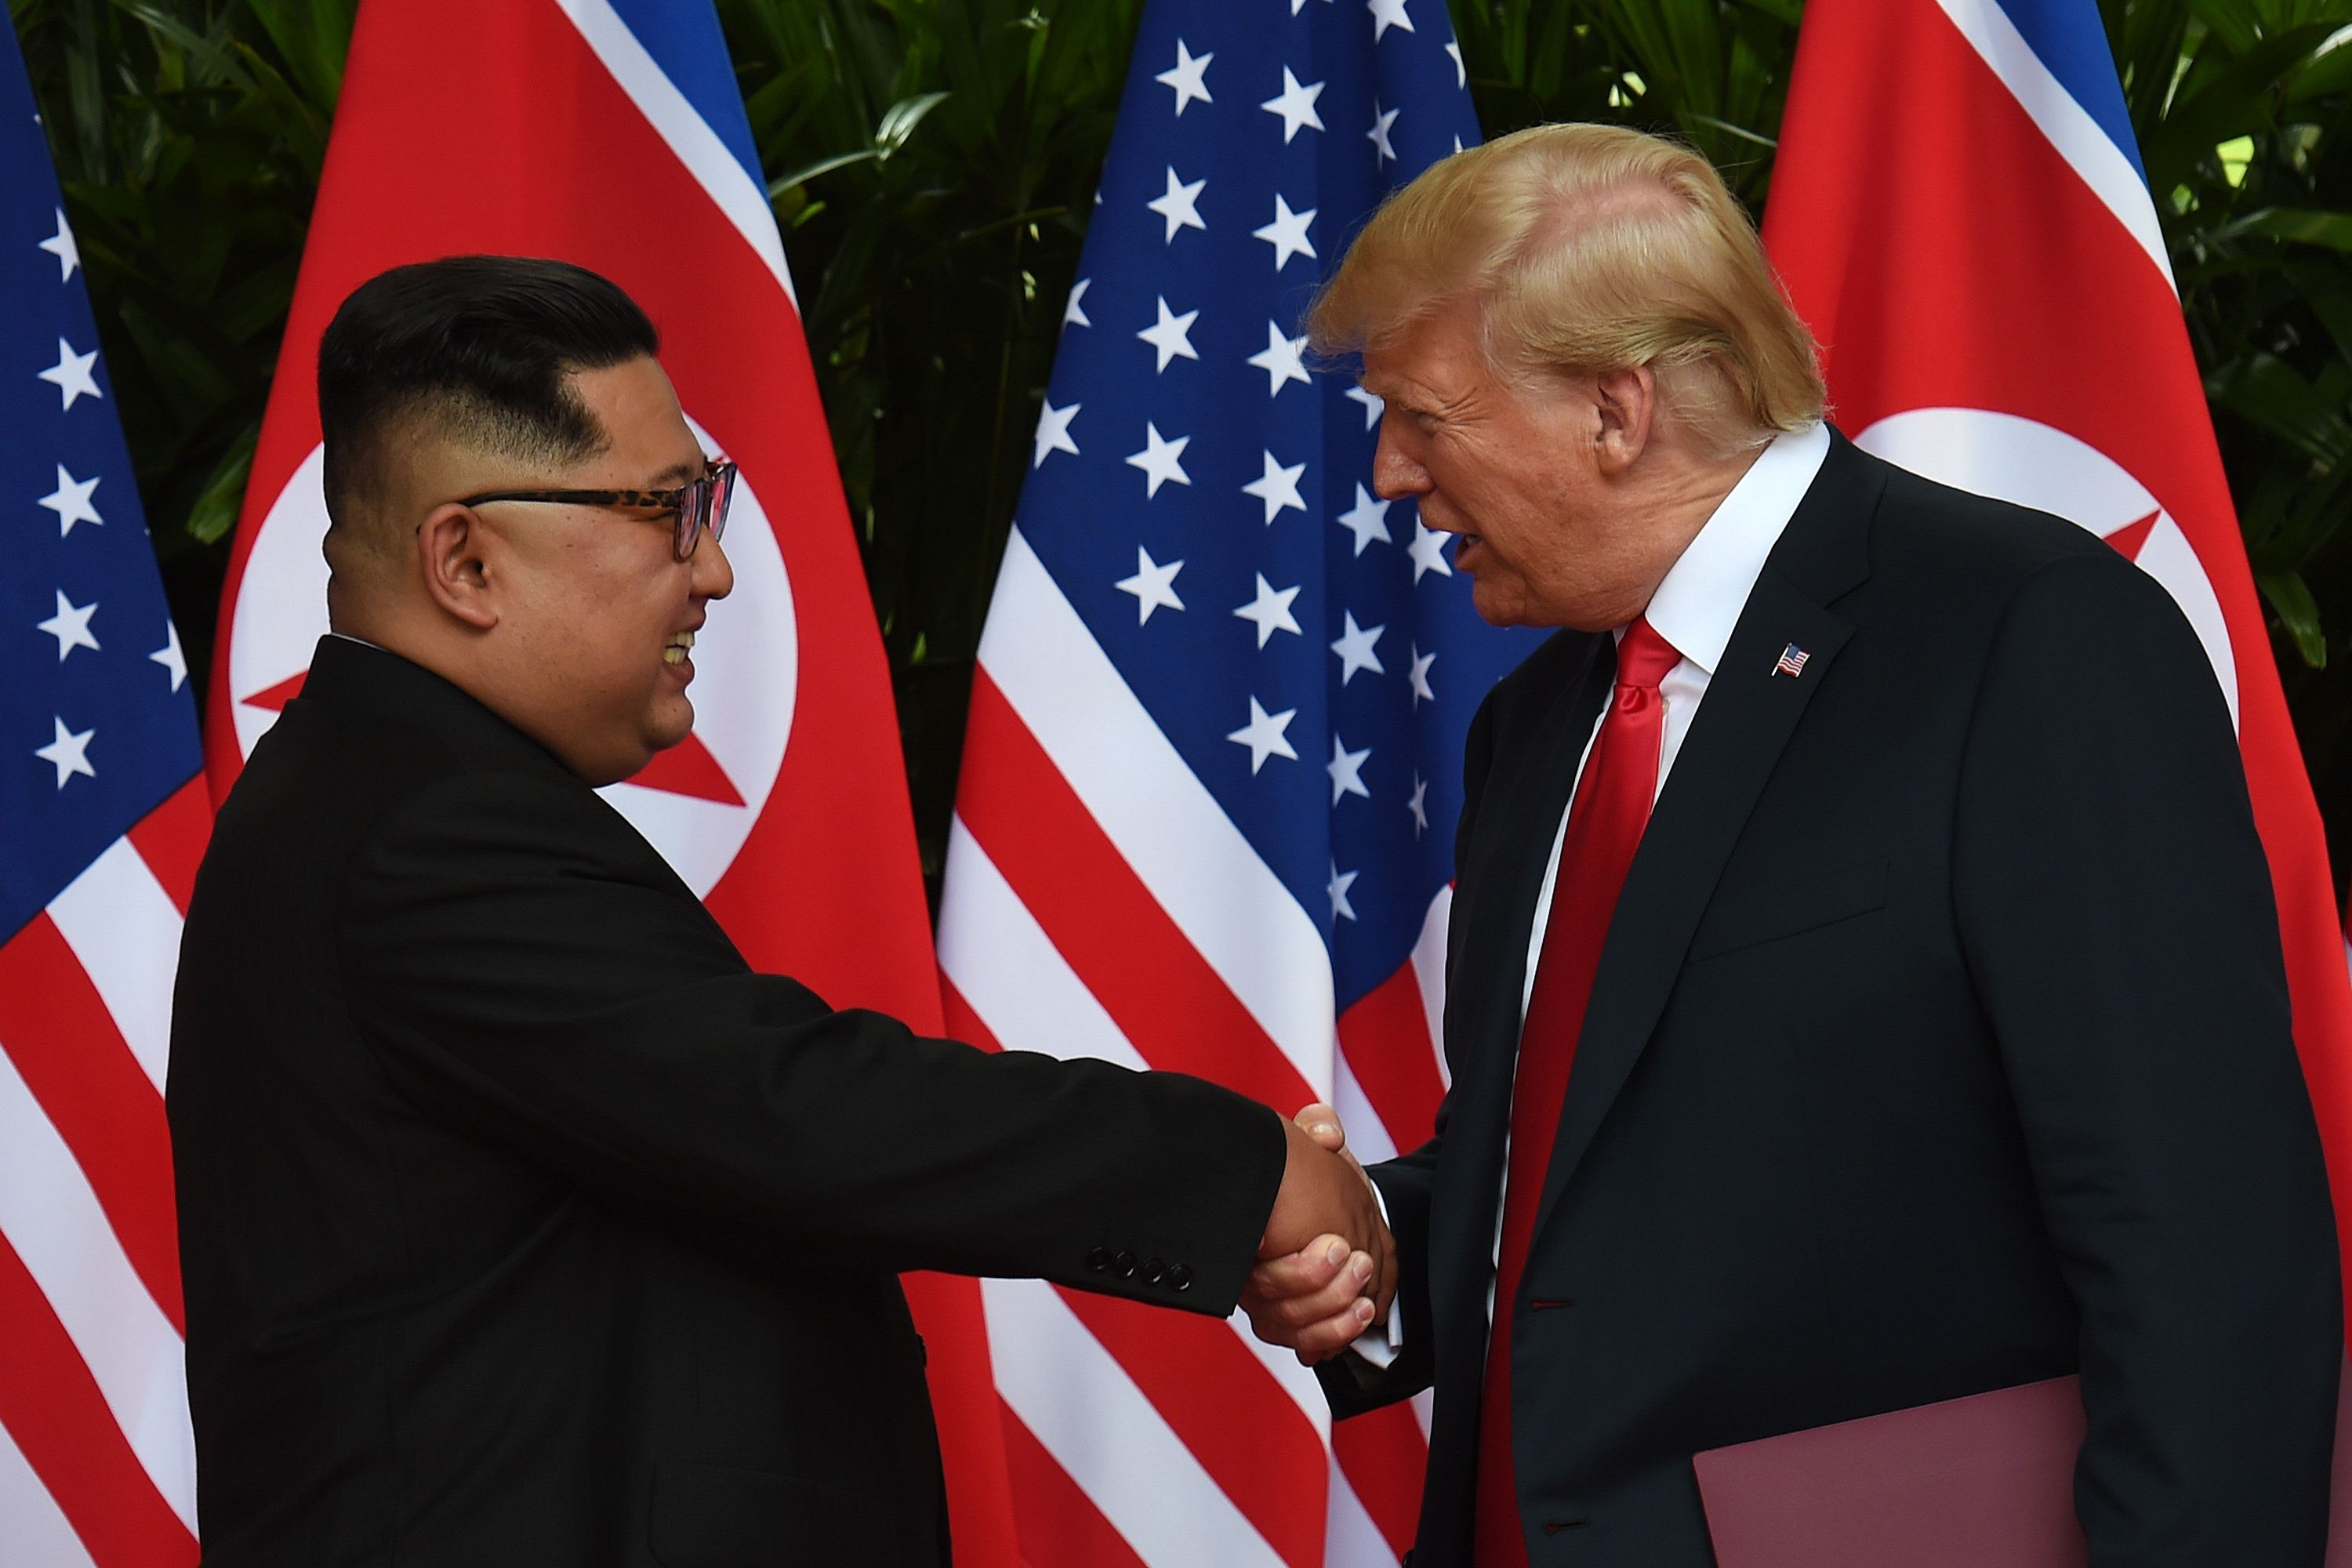 Fox News Changes Its Tune On North Korea To Echo Trump's Summit Talk